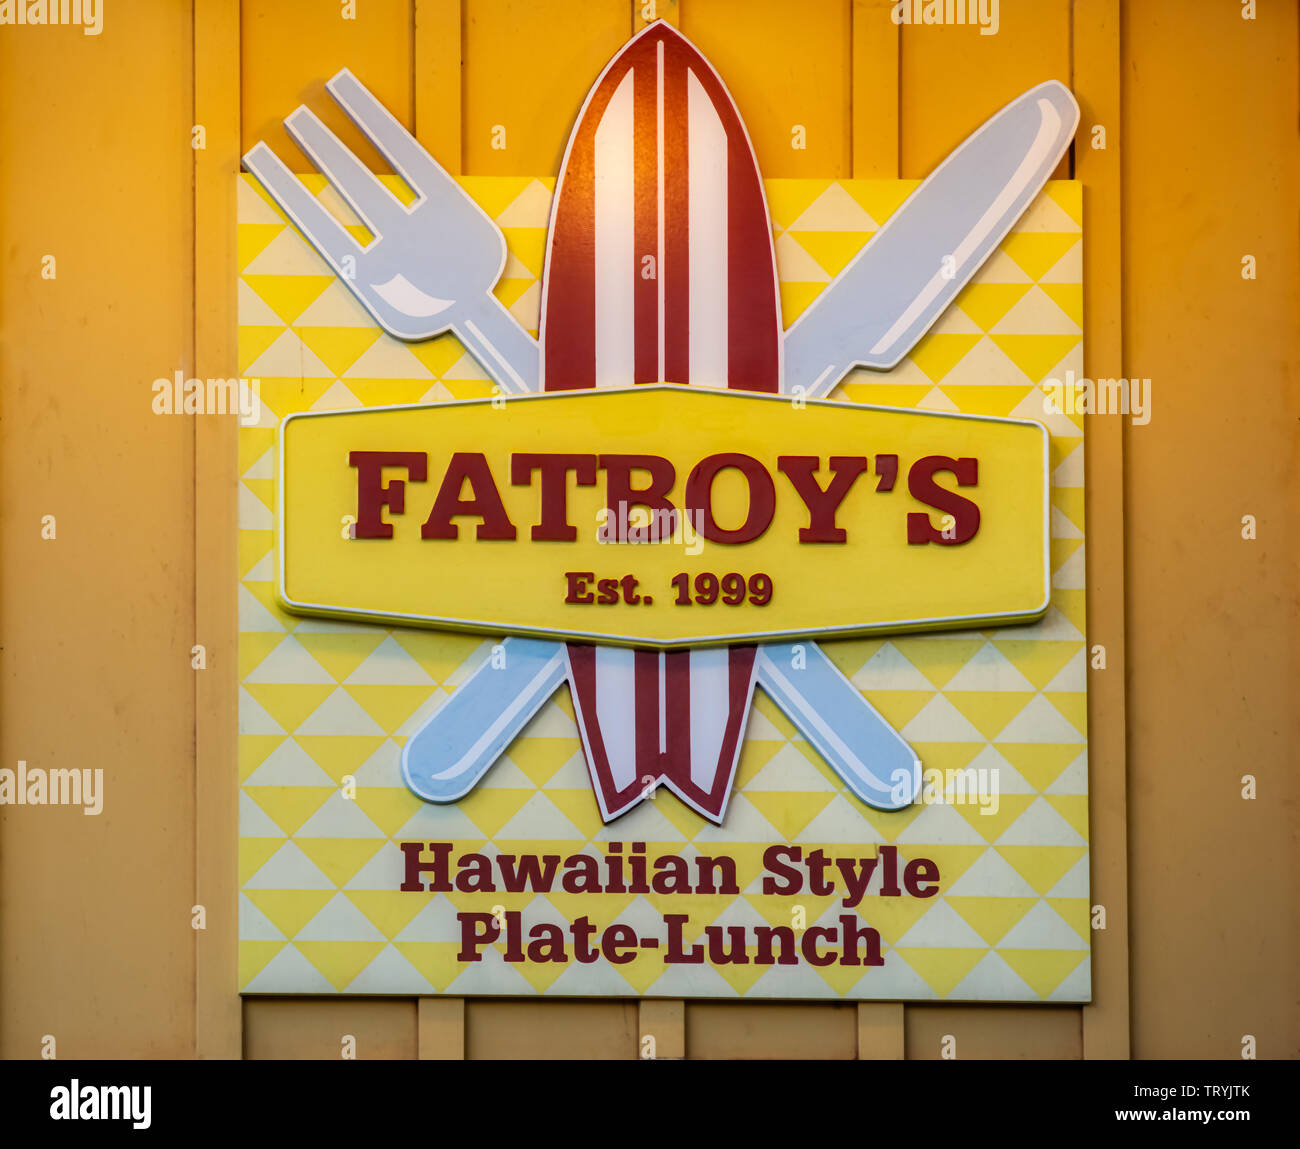 Oahu, Hawaii, USA 10/06/2016.  Fatboy's Hawaiian Style Plate-Lunch at NorthShore Oahu - Stock Image